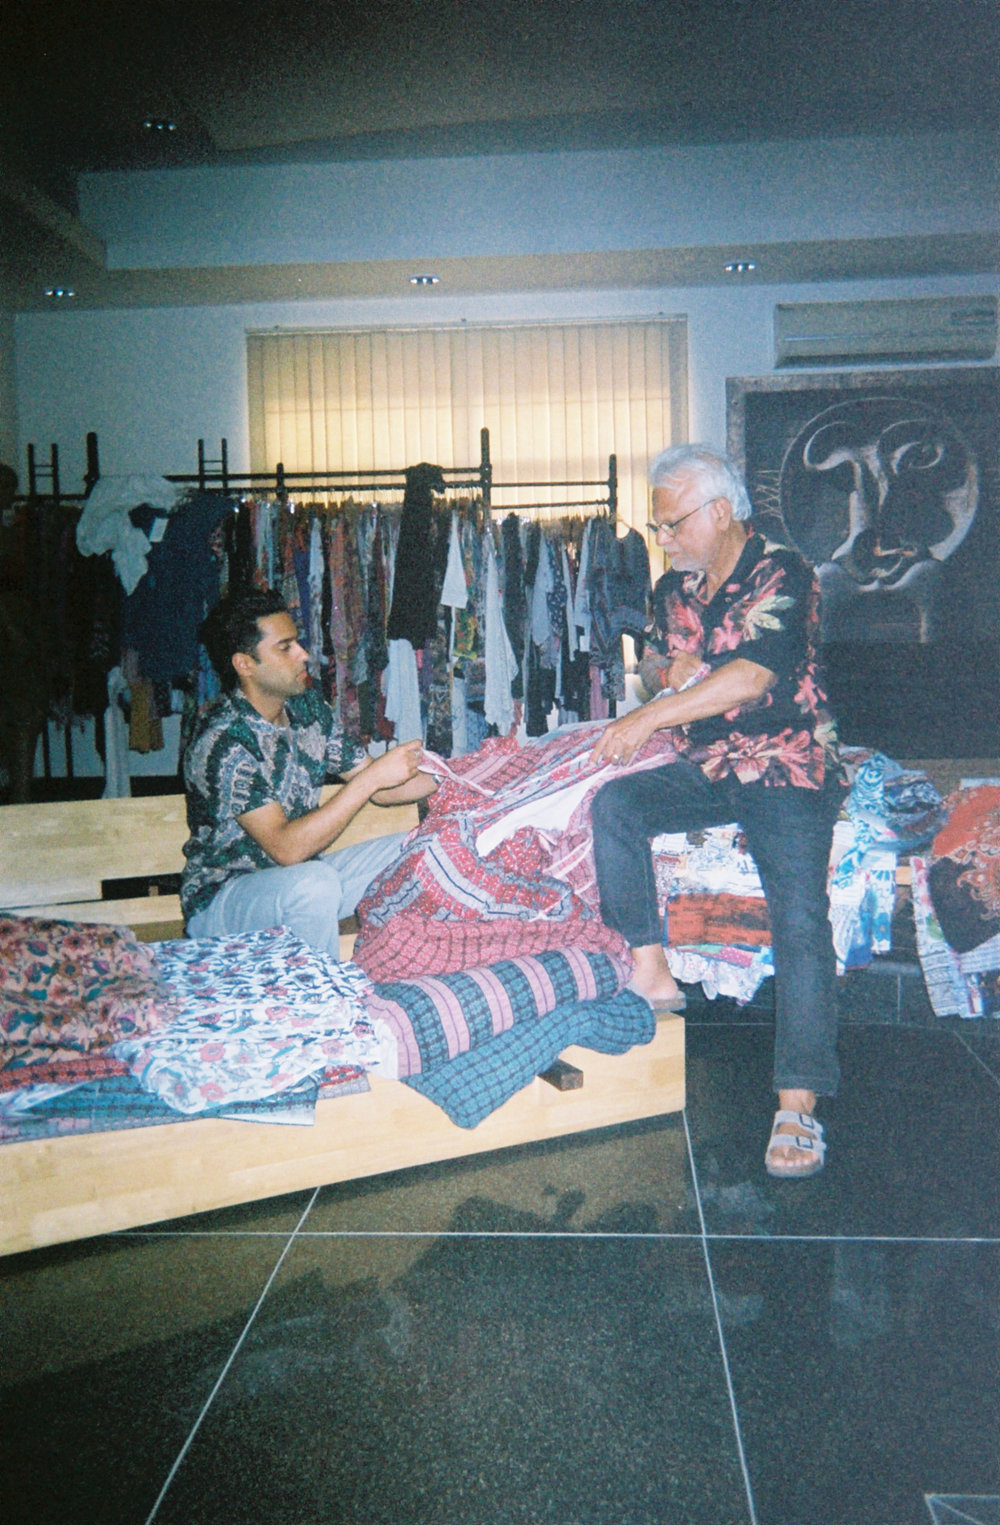 PAST TO PRESENT -  RAGA MAN WASHES THE DESIGNS AND FABRICS FROM THE DESERTS OF INDIA'S RAJASTHAN, THE LAND OF KINGS, WITH THE SALT WATER OF THE BEACH.FEATURING A RANGE OF BOTH PRINTS AND SOLIDS, RAGA MAN USES SOFT AND BREATHABLE FABRICS, CULTURALLY ROOTED ARTWORK, AND THE HAND BLOCK TECHNIQUES OF THE ROYAL RAJASTHANI PRINTERS.WITH RELAXED BUT CLASSIC CUTS INSPIRED BY THE GRITTY ARTISANAL ROOTS OF VENICE, RAGA MAN IS BOTH SPIRITUAL AND TASTEFUL, CONFIDENT AND OPEN MINDED, WORLDLY YET ROOTED.